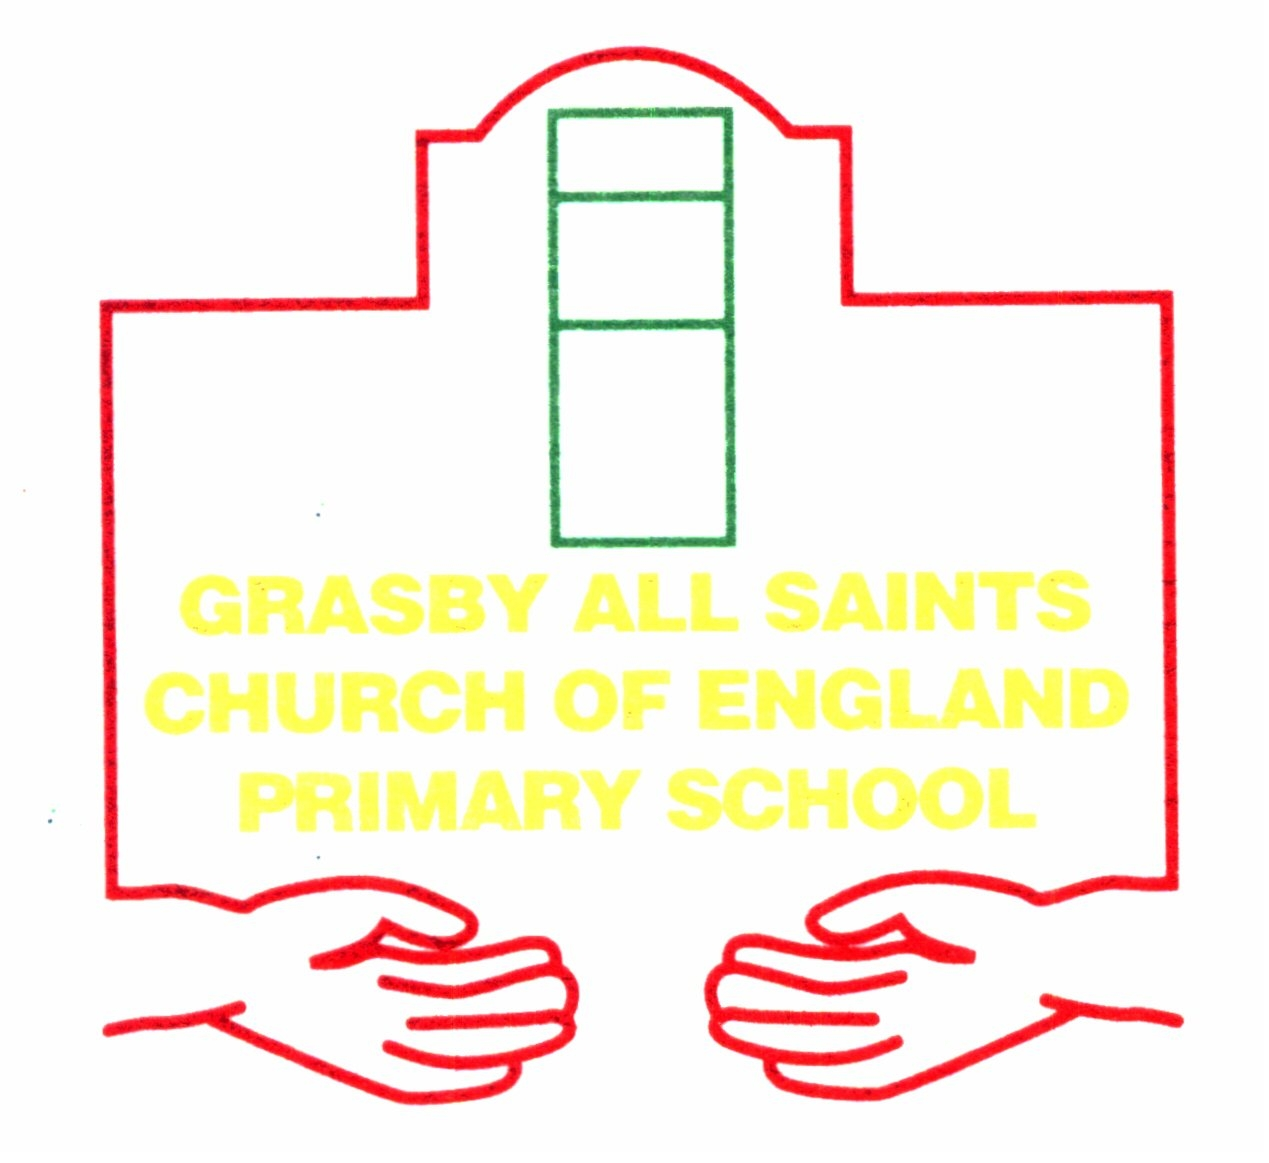 Grasby All Saints C of E Primary School